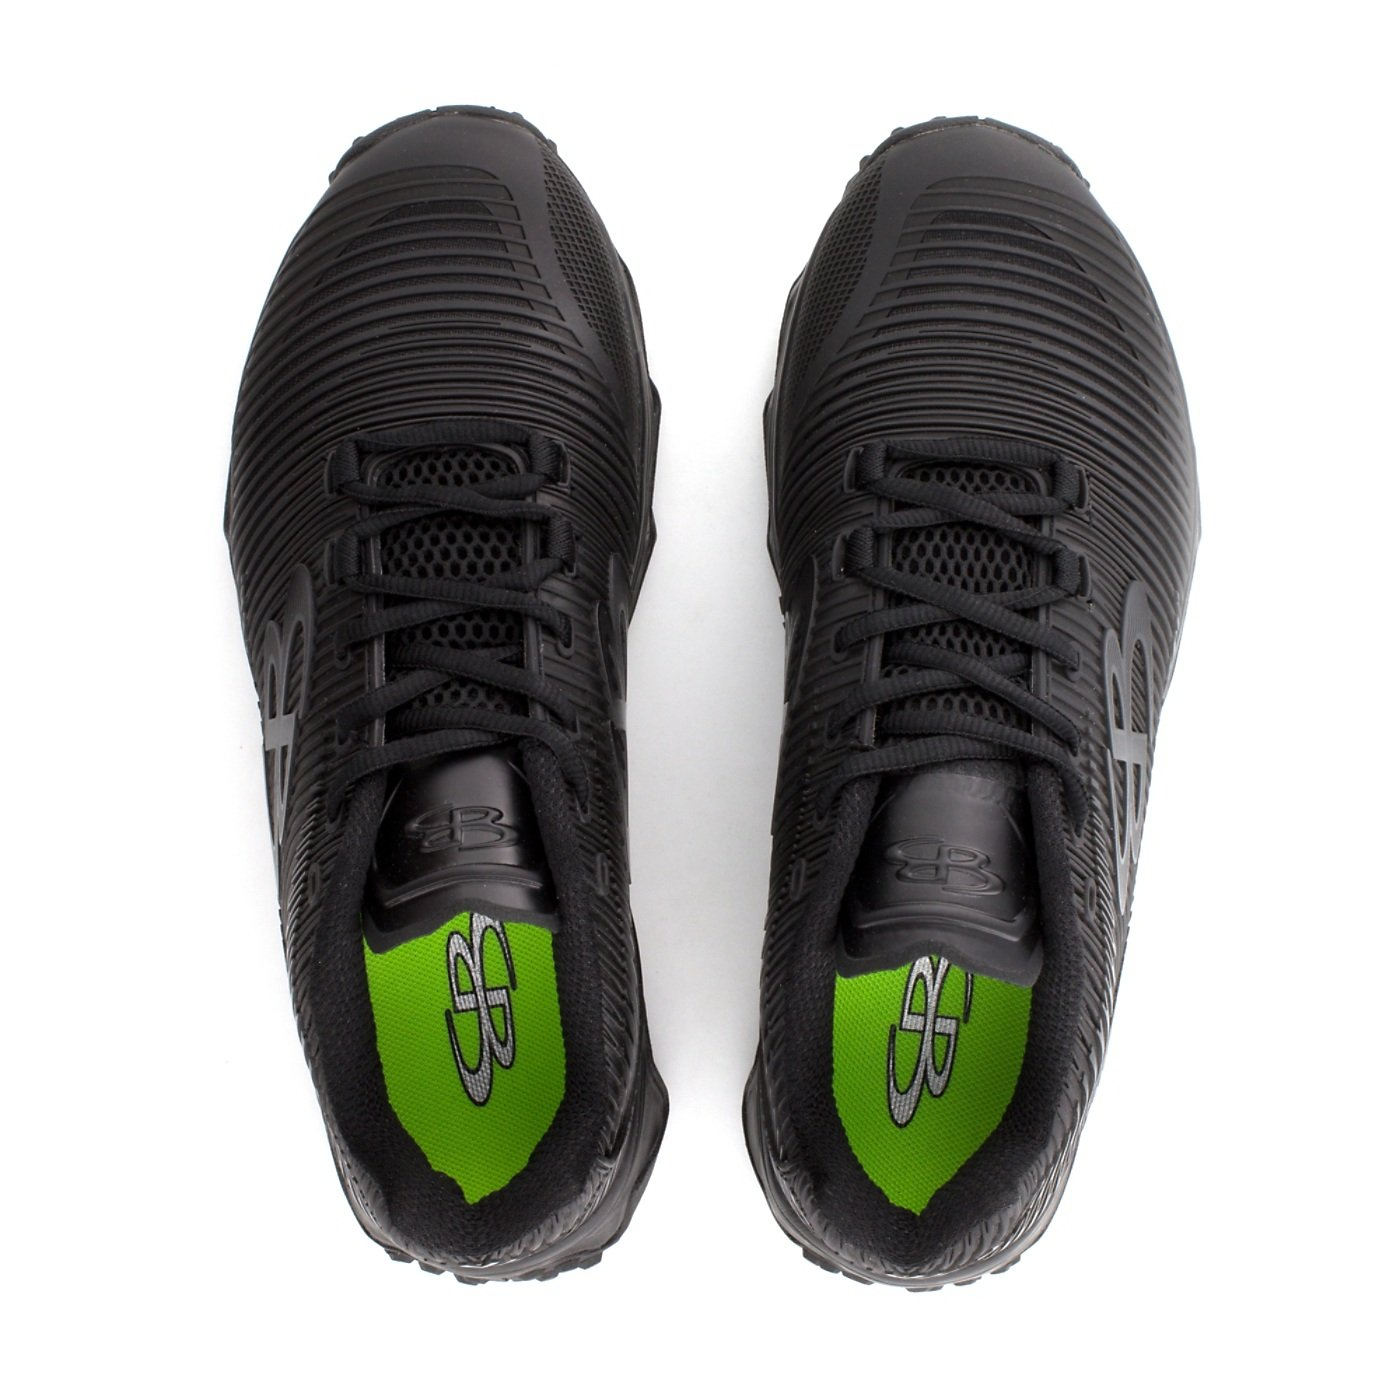 c475f38987a Amazon.com  Boombah Men s Aftershock DPS Turf Shoes - Multiple Color  Options - Multiple Sizes  Sports   Outdoors